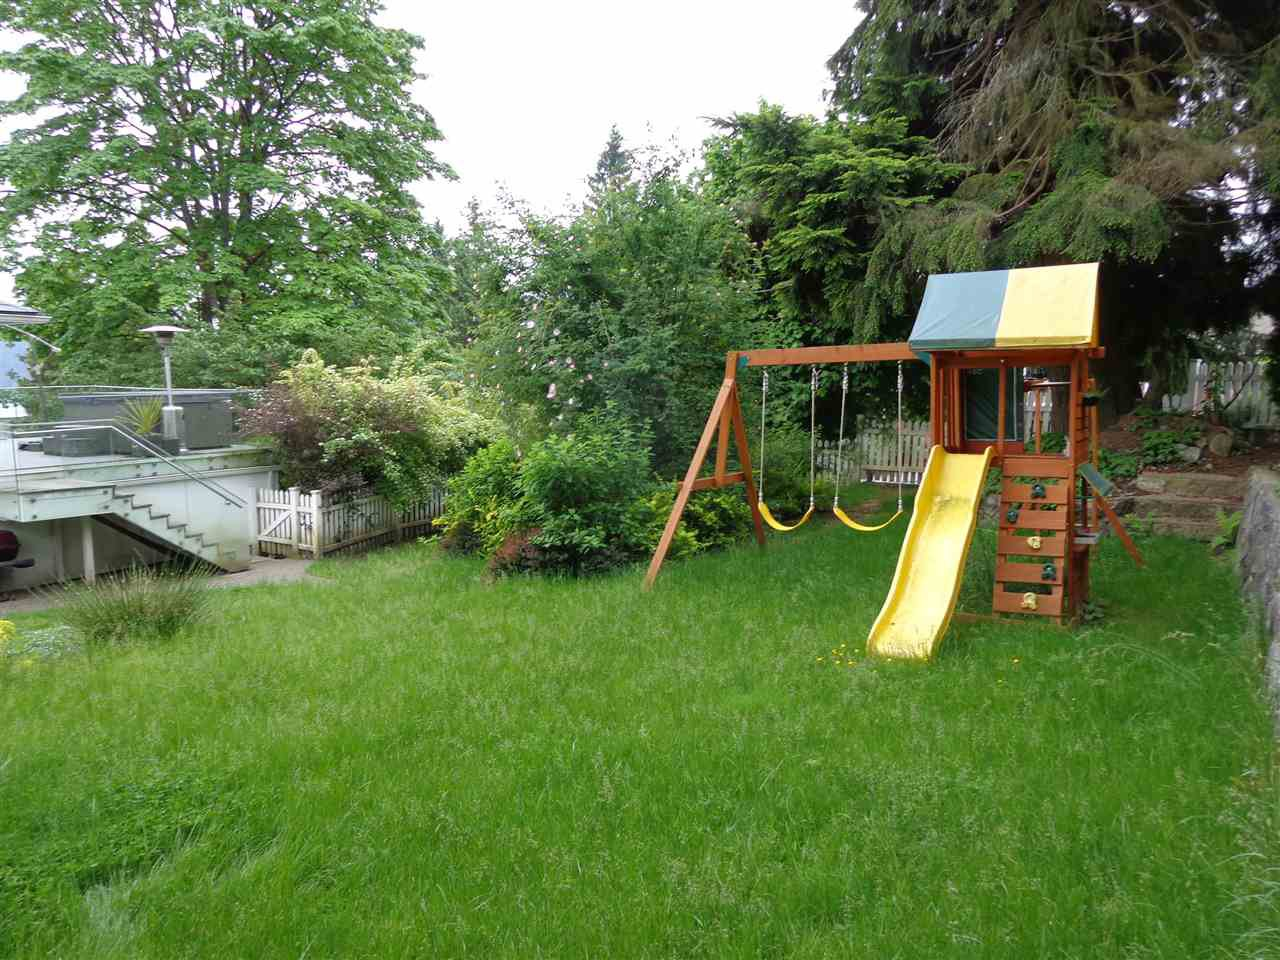 Photo 7: Photos: 4210 GLENHAVEN CRESCENT in North Vancouver: Dollarton House for sale : MLS®# R2373969